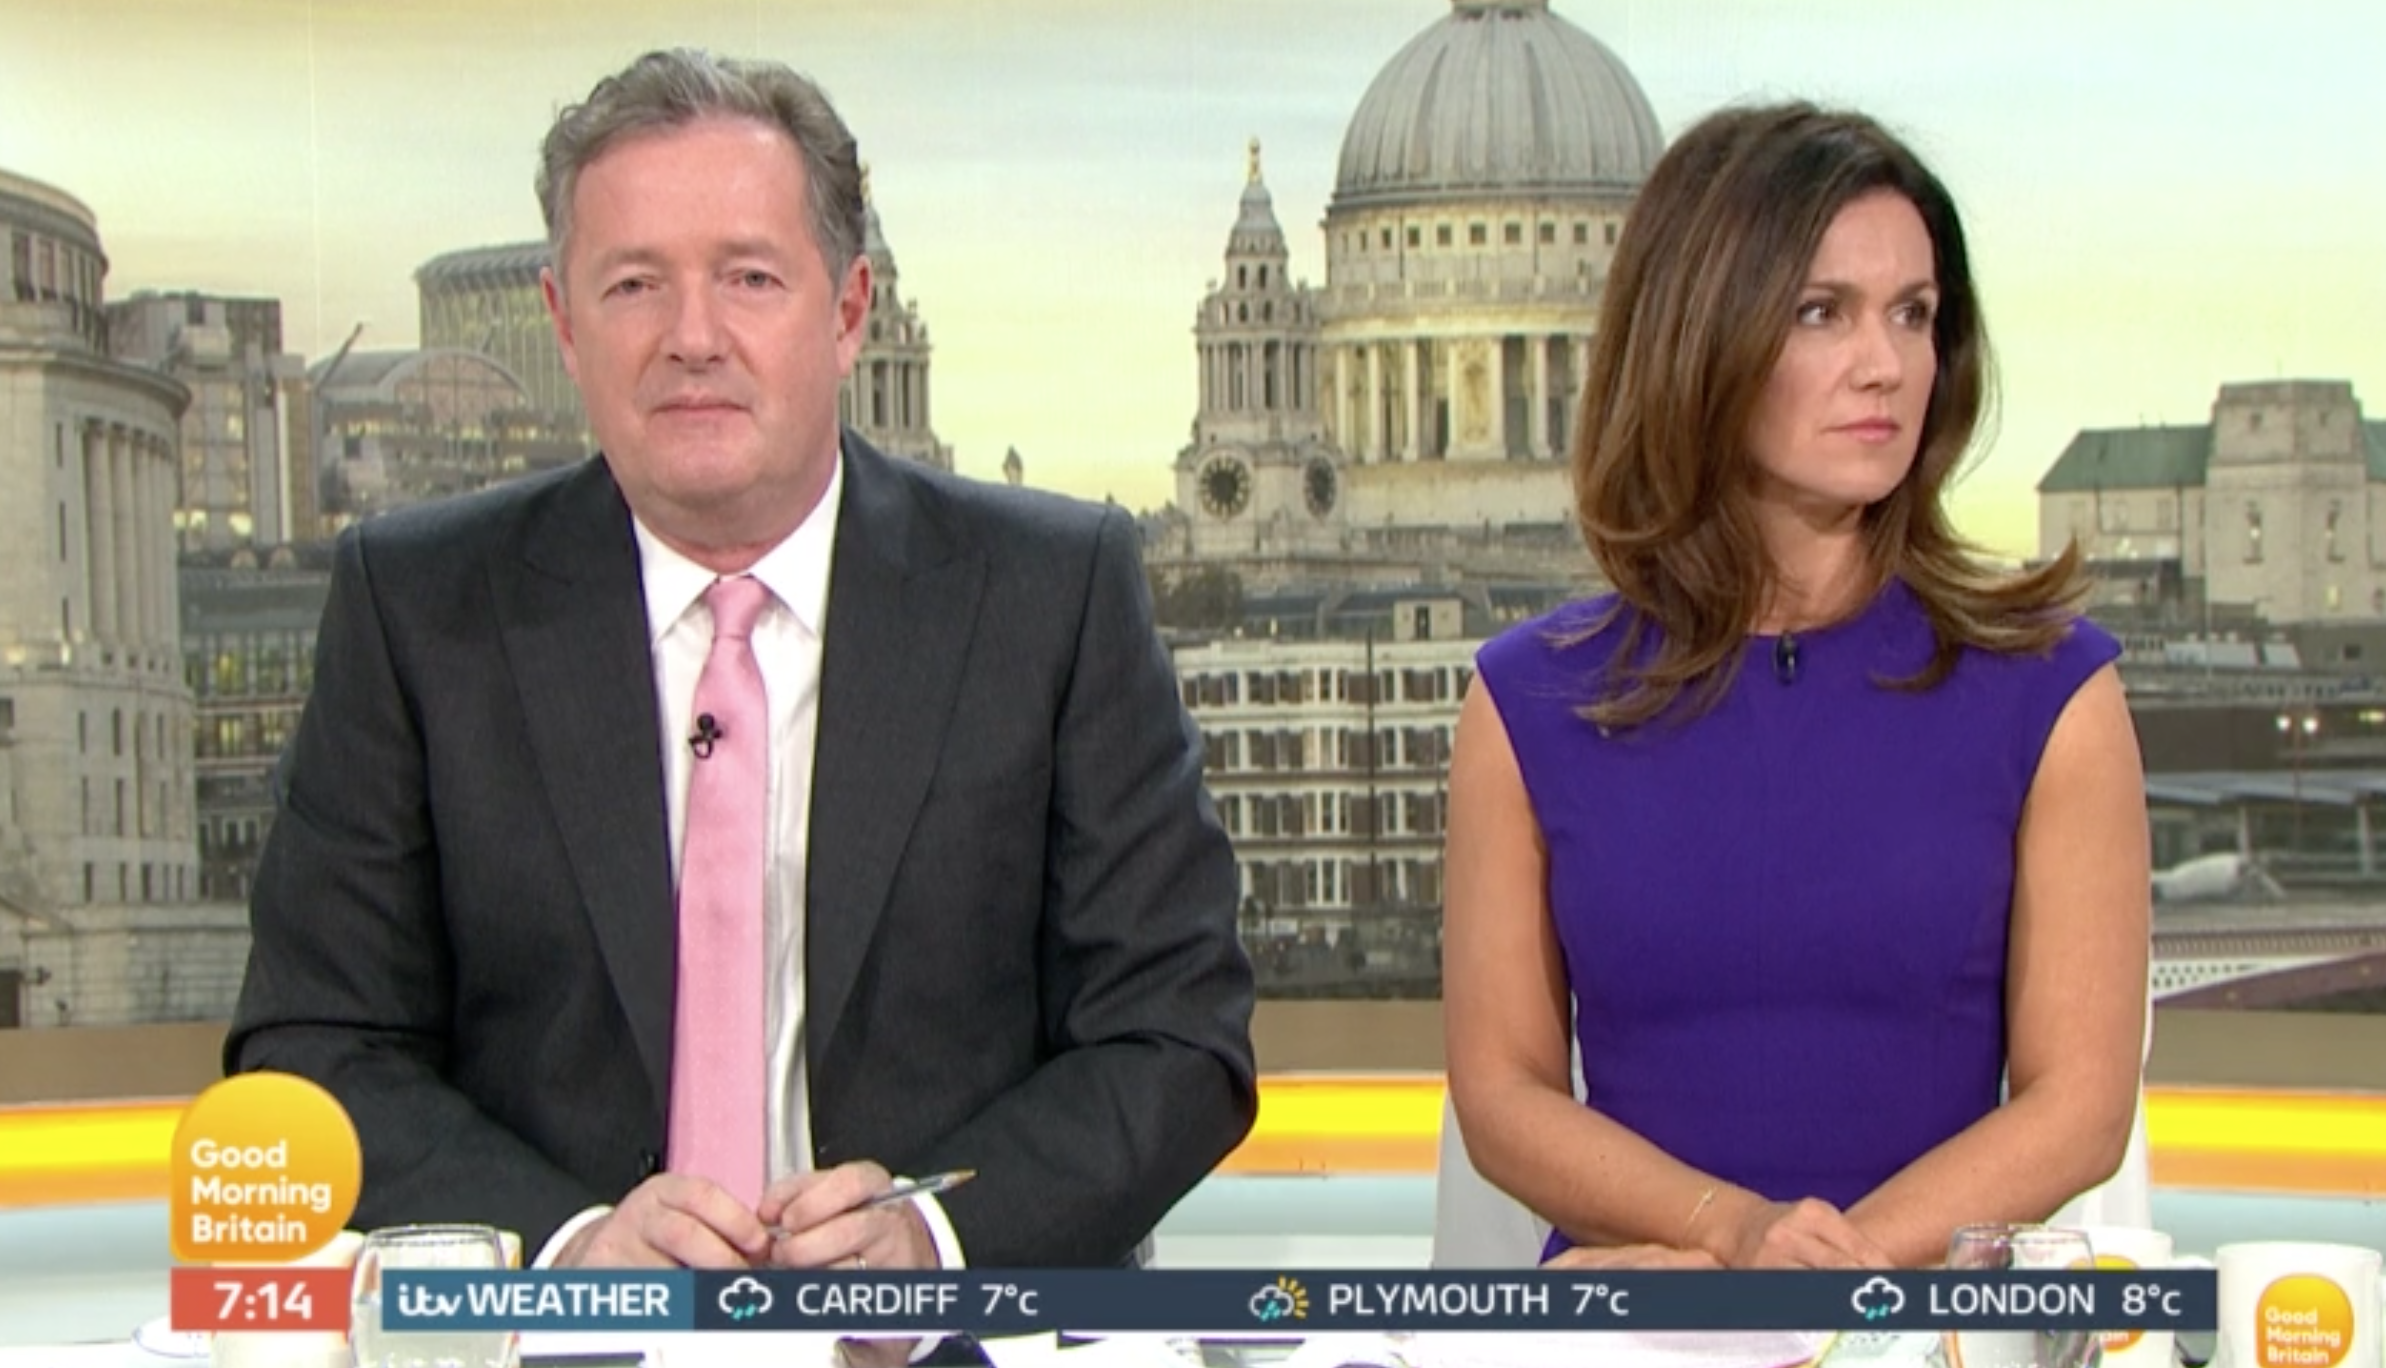 Susanna and Piers GMB